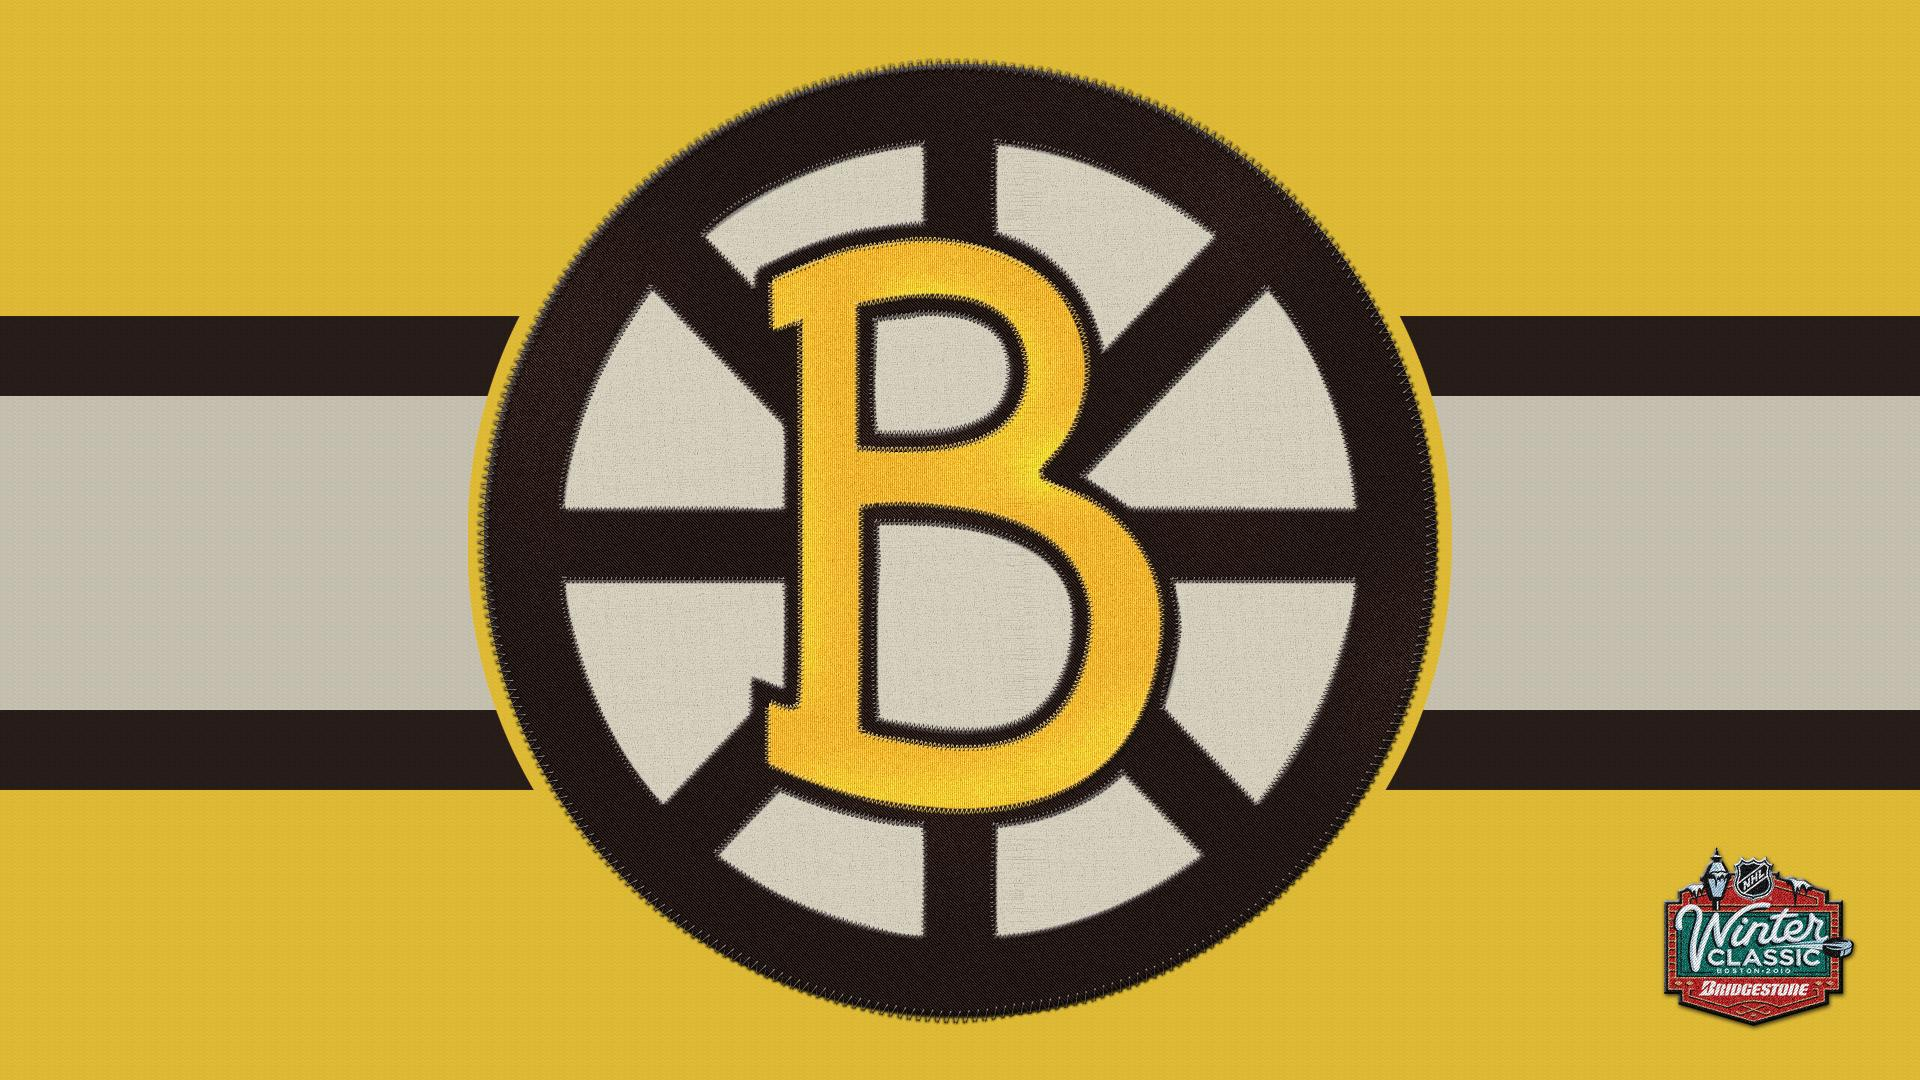 Boston Bruins wallpapers | Boston Bruins background